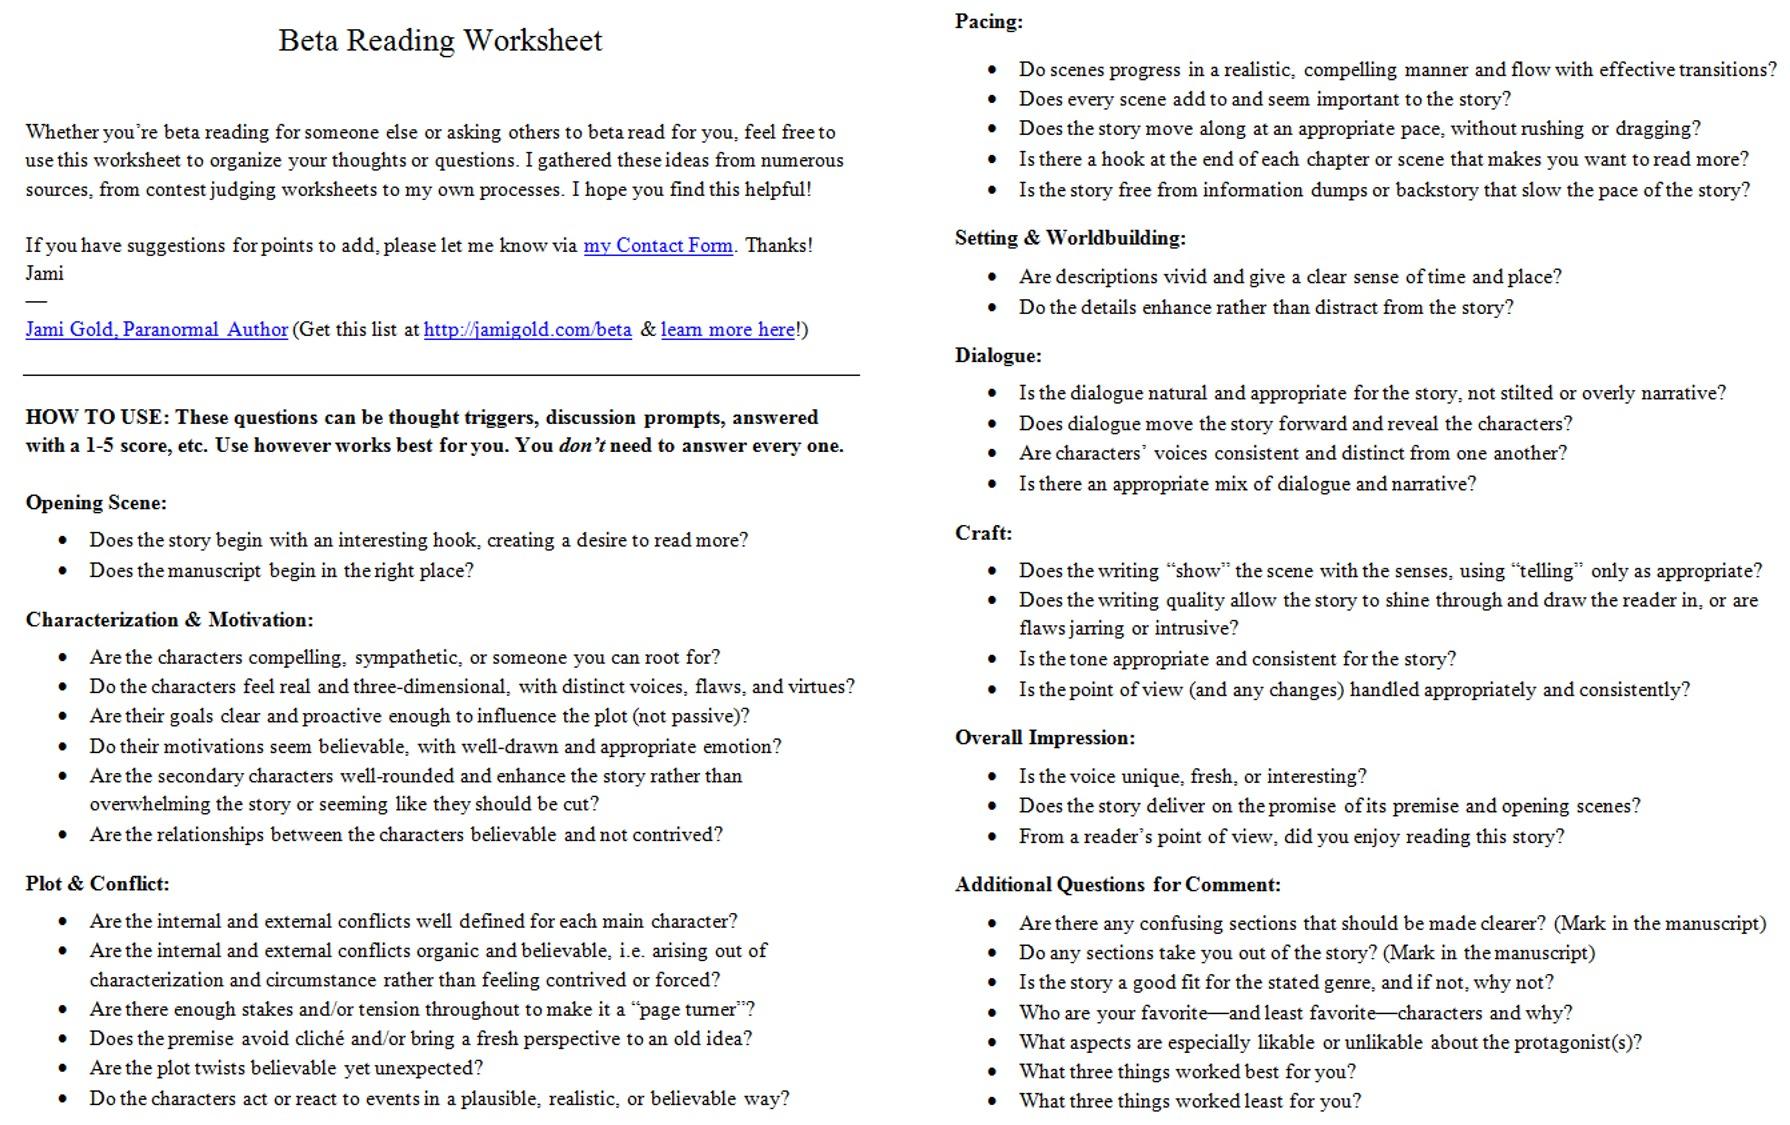 Proatmealus  Winning Worksheets For Writers  Jami Gold Paranormal Author With Lovable Screen Shot Of The Twopage Beta Reading Worksheet With Captivating Writing And Balancing Chemical Equations Worksheet Answers Also Atomic Mass Worksheet In Addition Free Reading Comprehension Worksheets Rd Grade And Adjacent Angles Worksheet As Well As Grammer Worksheets Additionally Electrostatics Worksheet From Jamigoldcom With Proatmealus  Lovable Worksheets For Writers  Jami Gold Paranormal Author With Captivating Screen Shot Of The Twopage Beta Reading Worksheet And Winning Writing And Balancing Chemical Equations Worksheet Answers Also Atomic Mass Worksheet In Addition Free Reading Comprehension Worksheets Rd Grade From Jamigoldcom